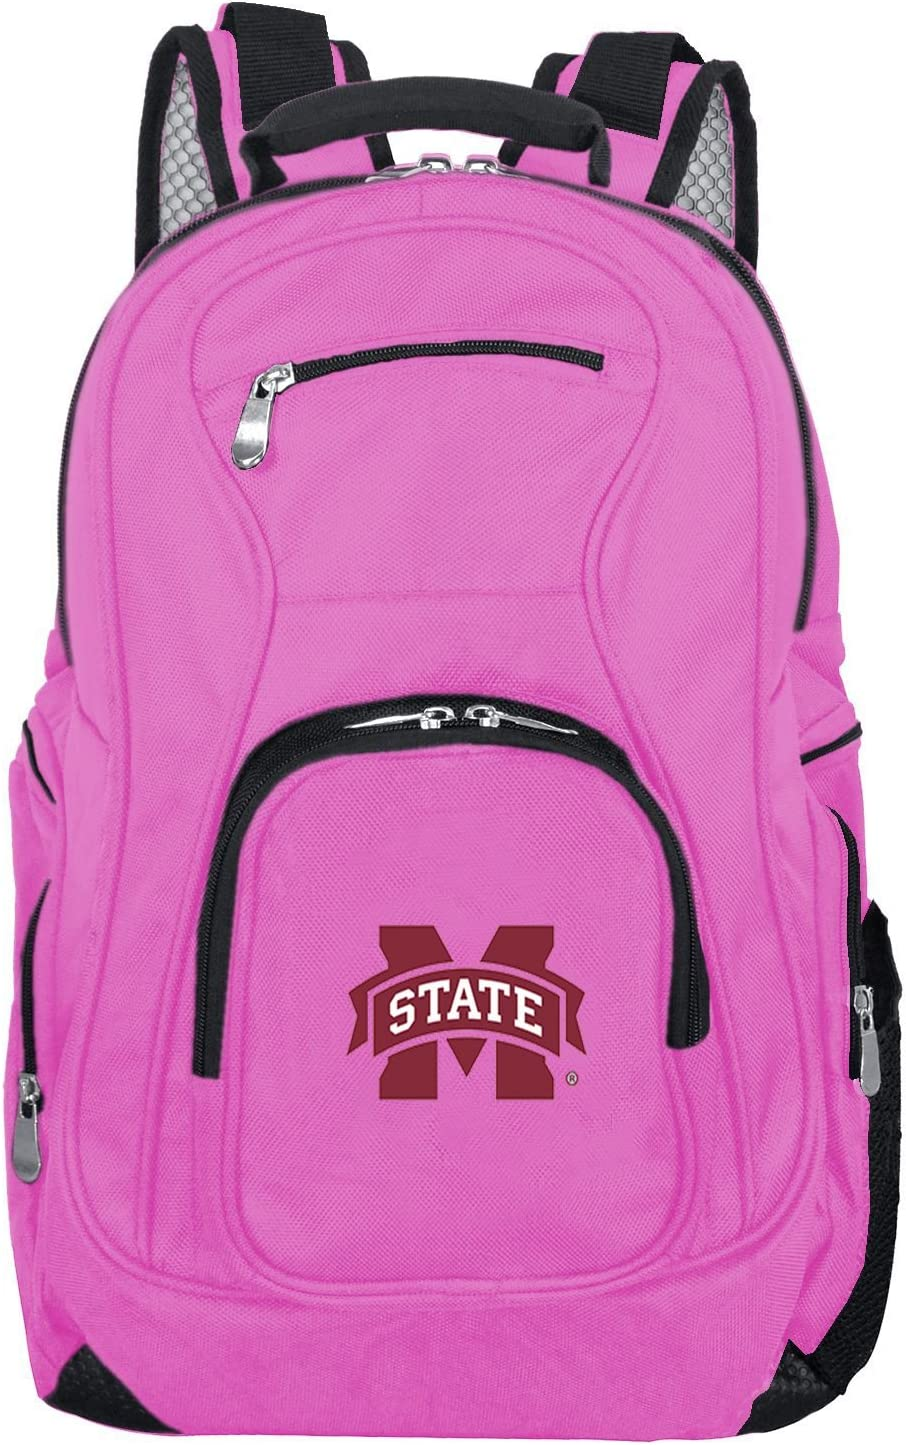 Denco NCAA Unisex-Adult NCAA Voyager Laptop Backpack Pink 19-inches